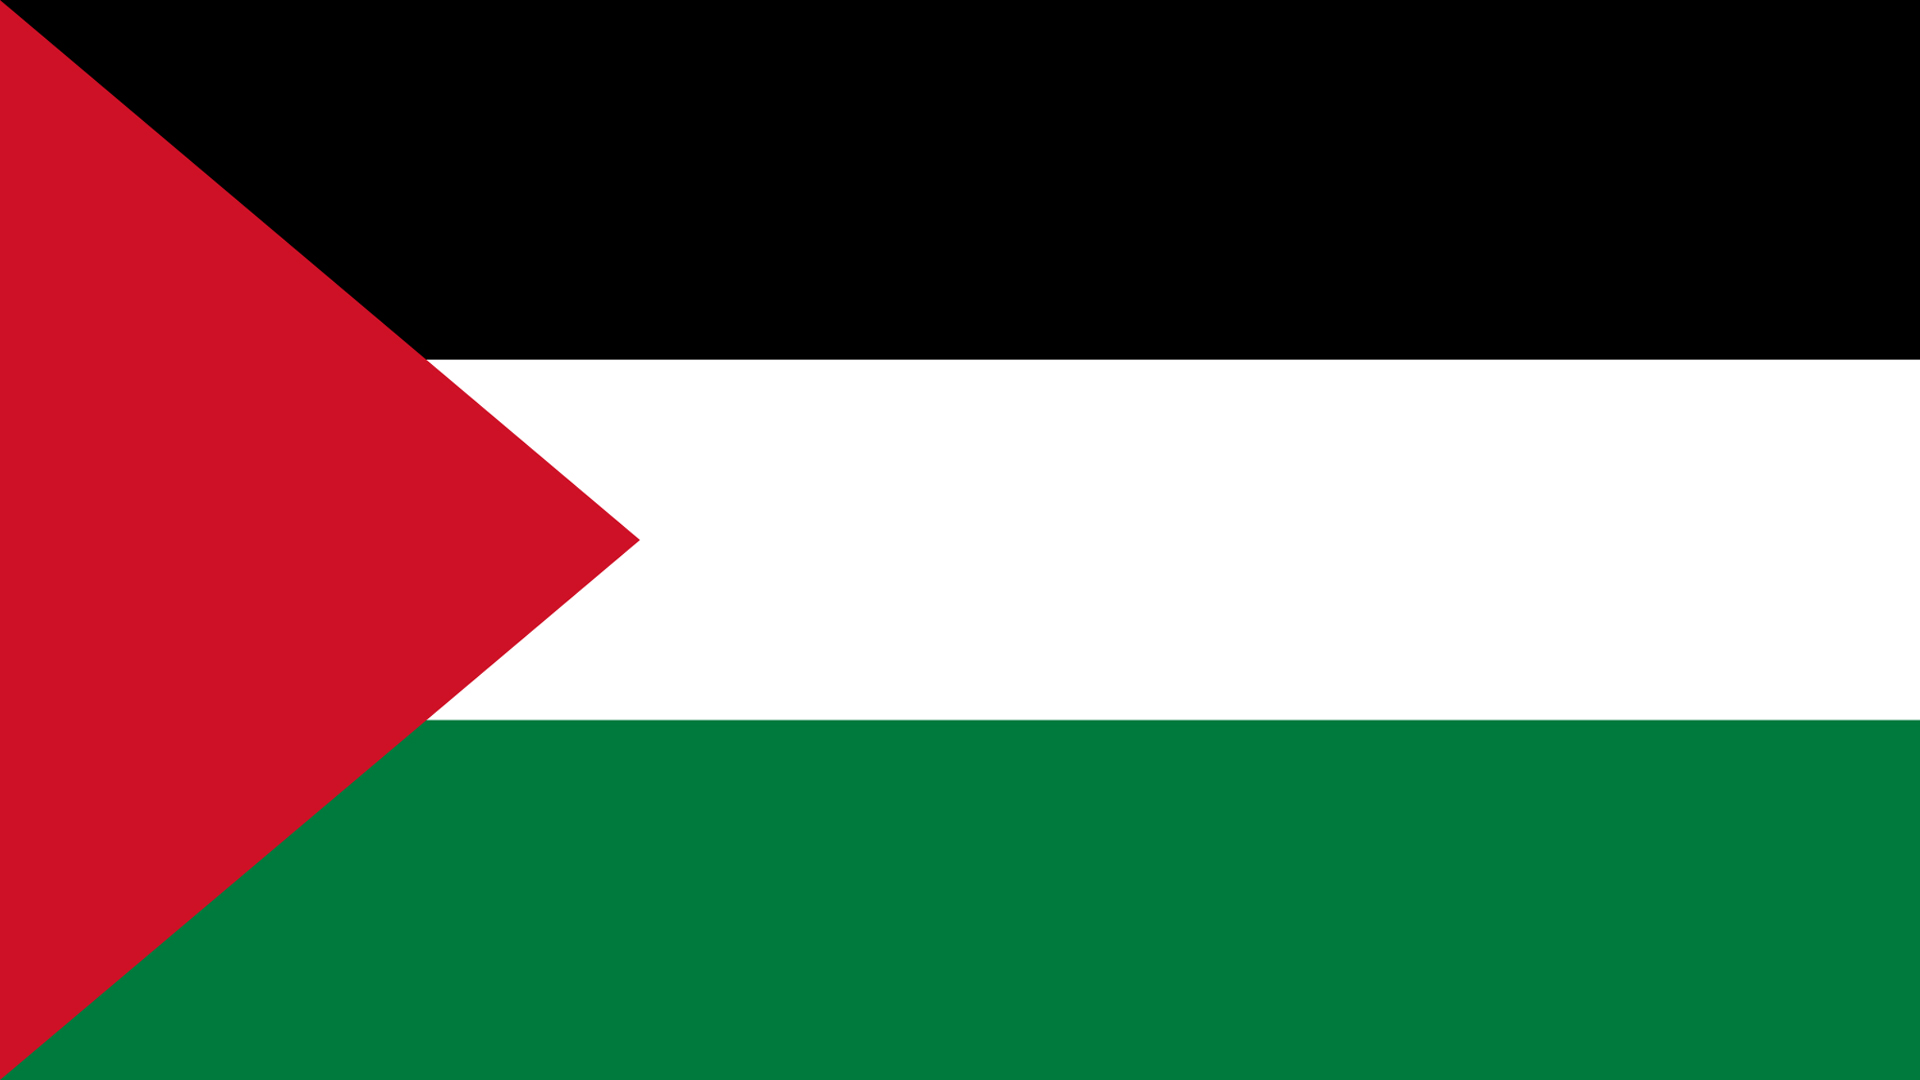 Palestine Flag   Wallpaper High Definition High Quality Widescreen 1920x1080